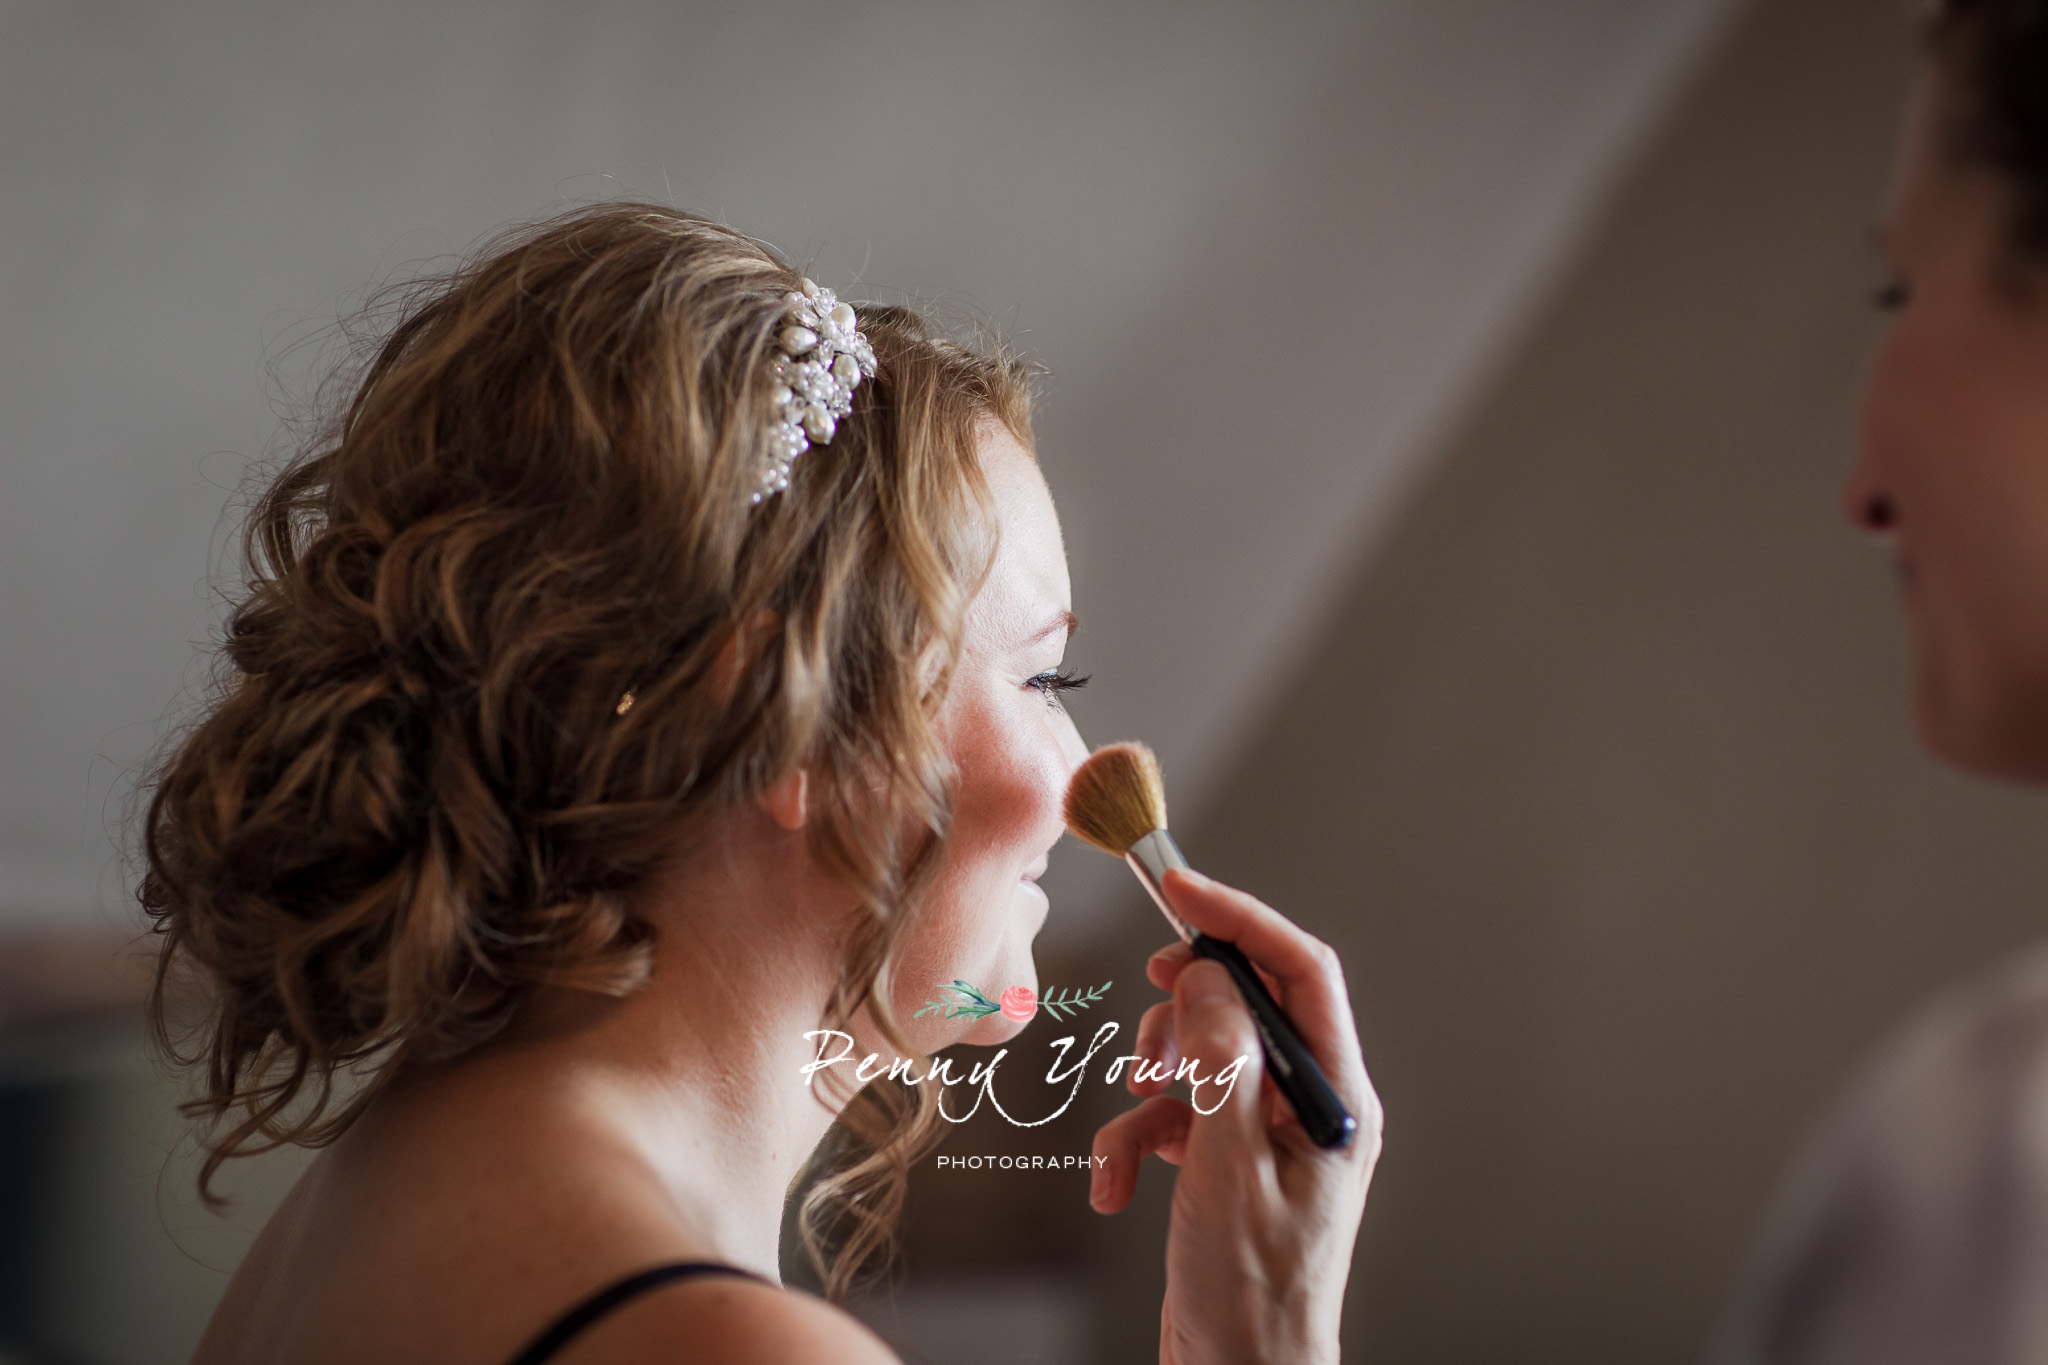 Penny_Young_Photography_The_Bell_Ticehurst_Wedding-Photography_Rachel_Matt_098